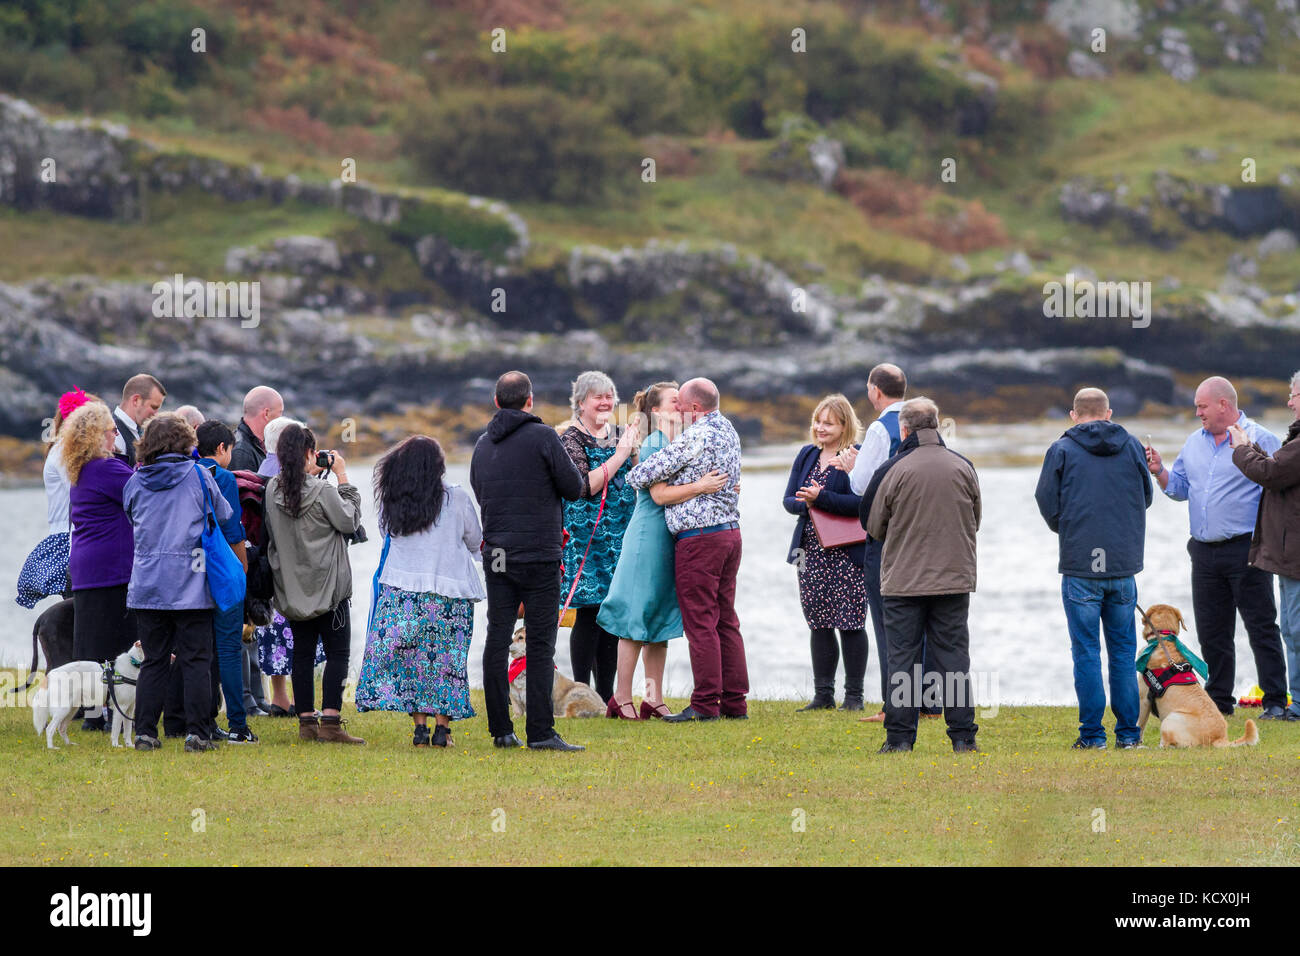 Wedding ceremony taking place outside with bride and groom kissing, Calgary Bay, Isle of Mull, Scotland, UK - Stock Image